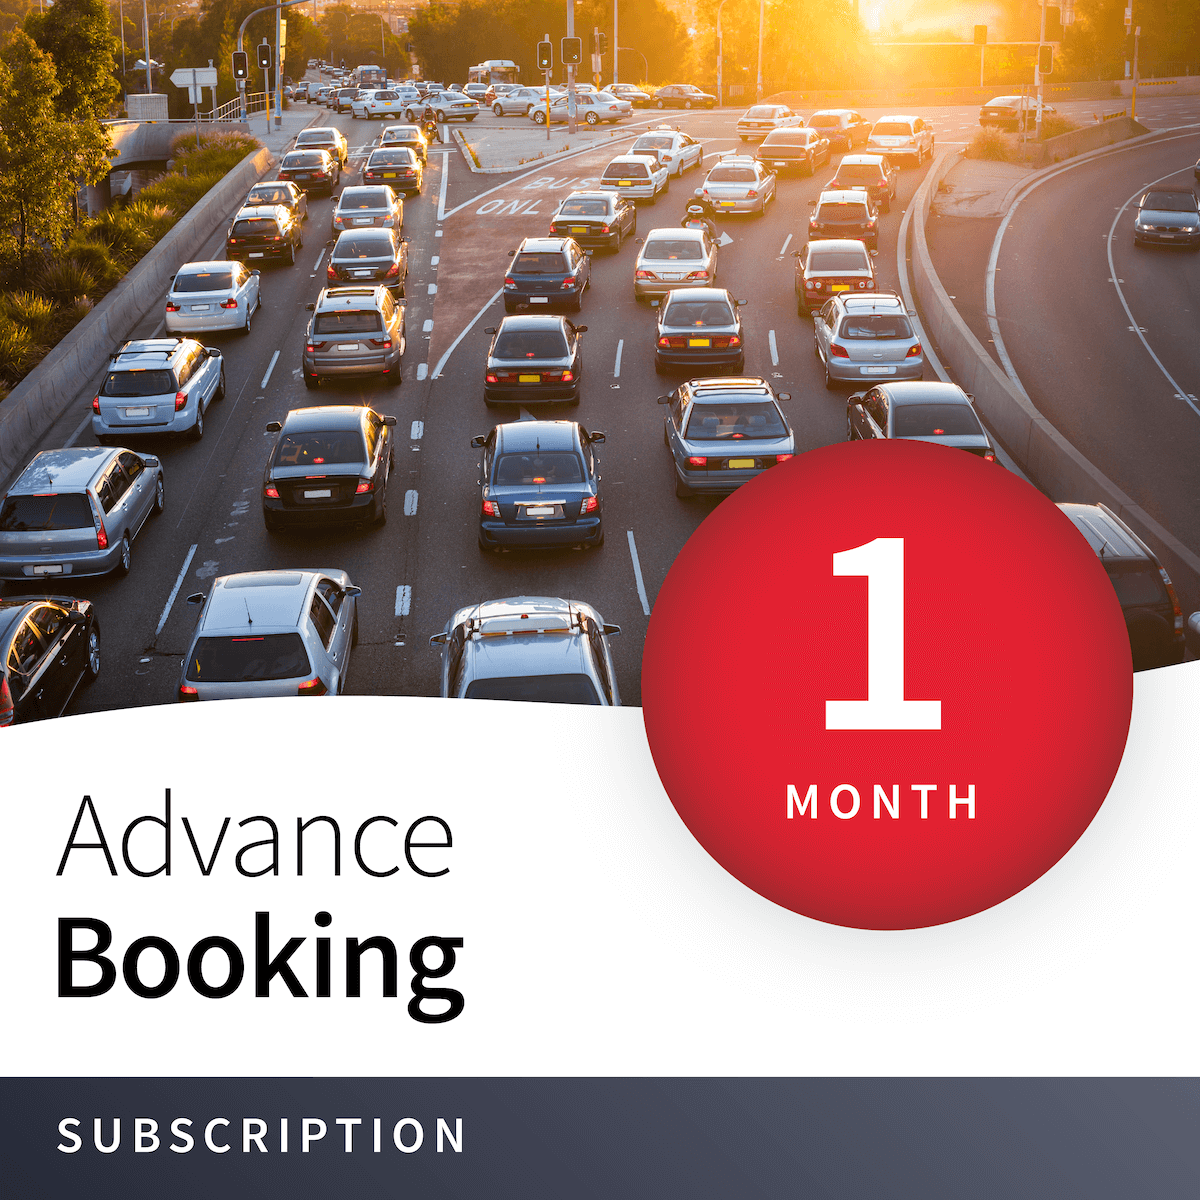 Priority Advance Booking - 1 Month 17